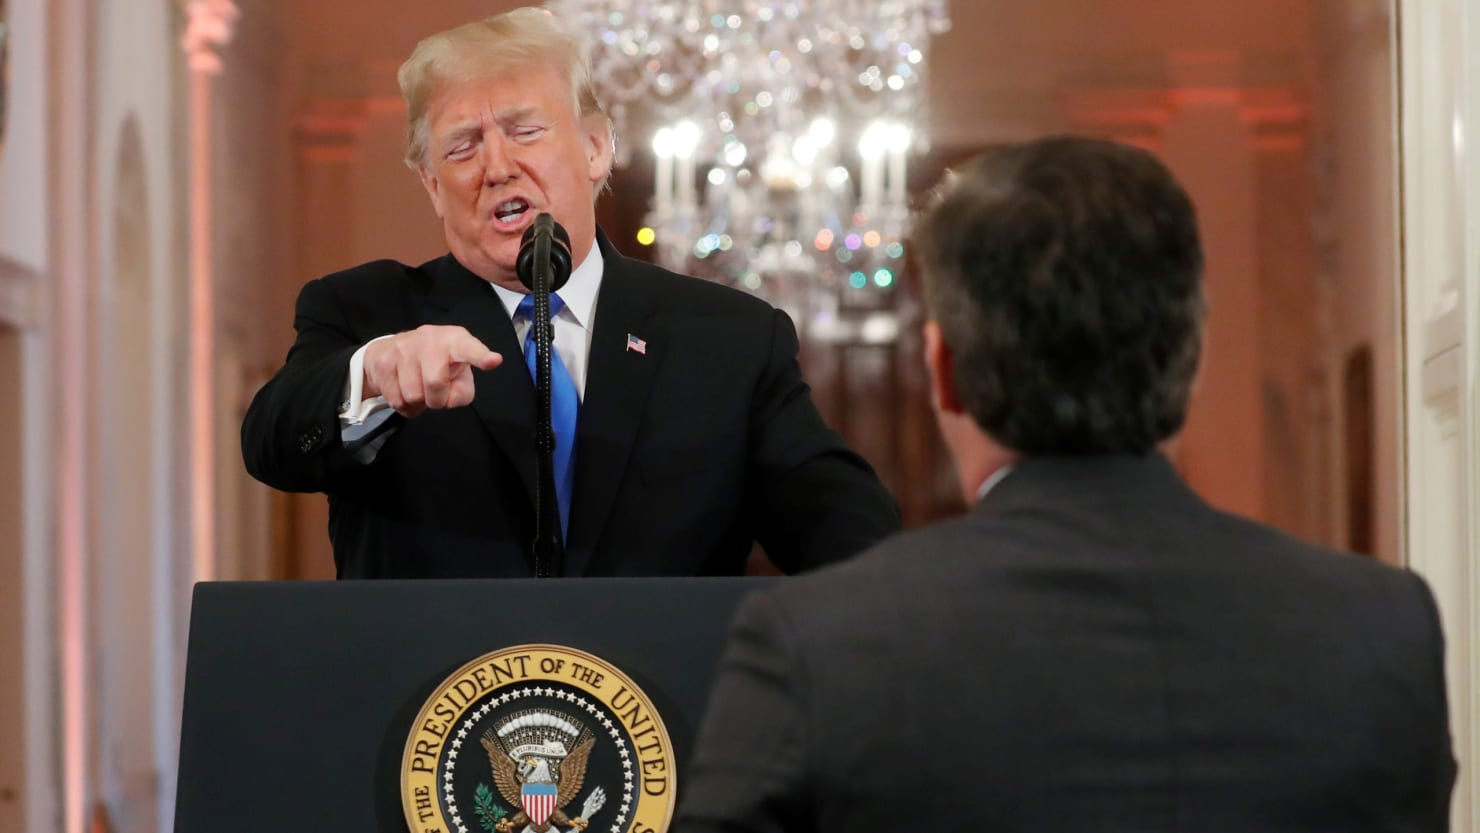 Trump Explodes at Reporters During White House Presser: 'That's Enough!'